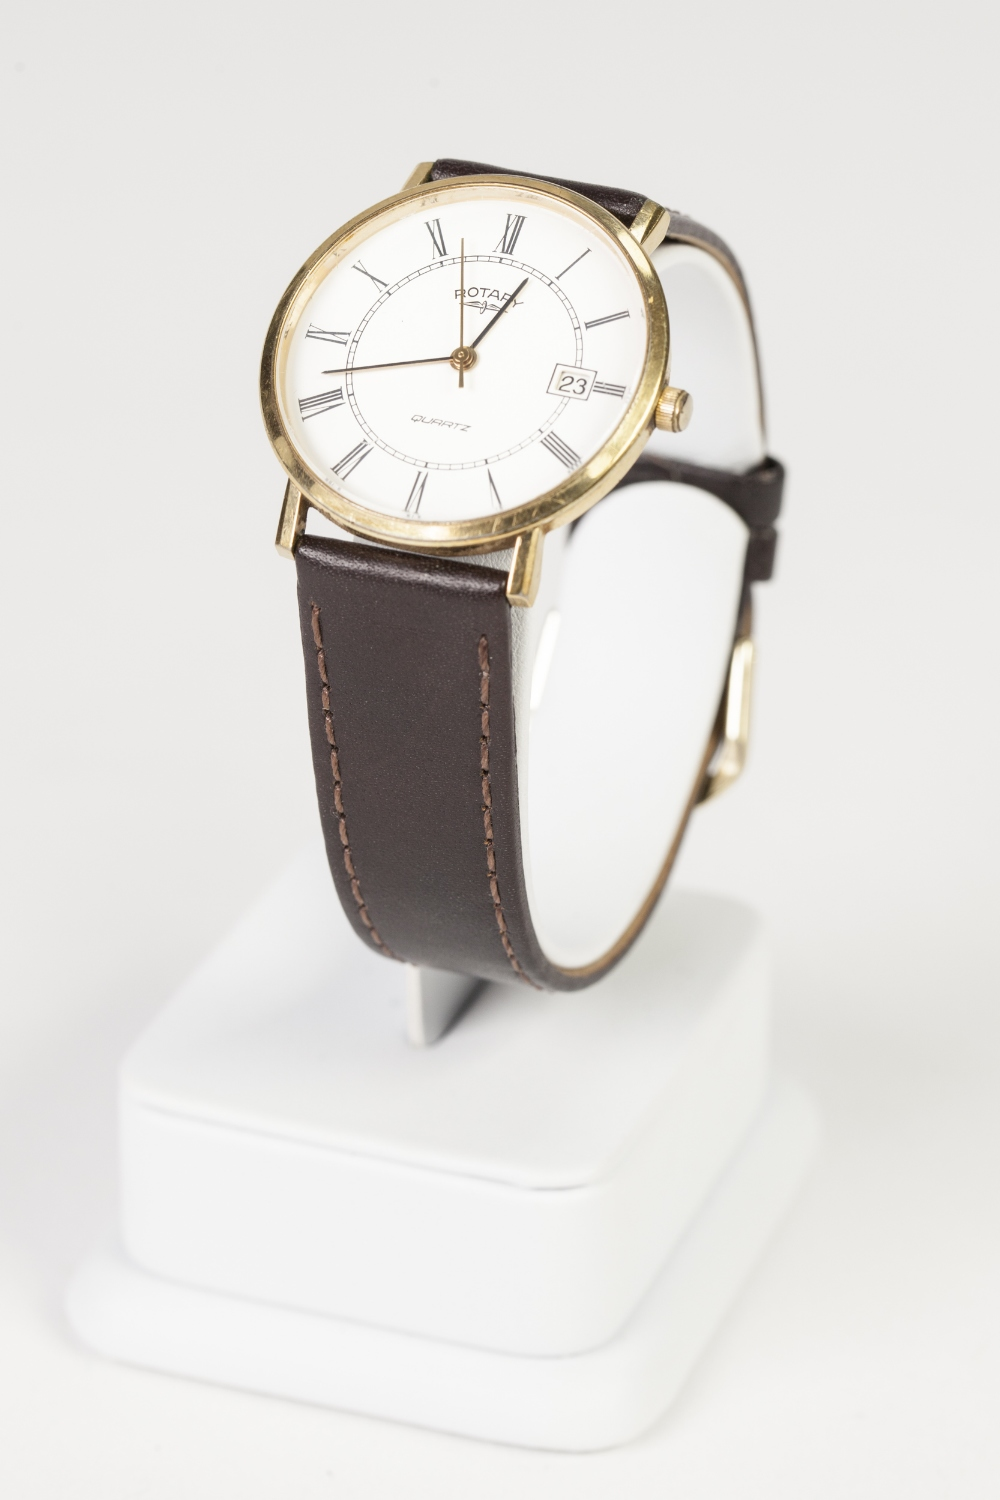 Lot 19 - GENTS ROTARY GOLD PLATED AND STAINLESS STEEL WRIST WATCH, with quartz movement, white Roman circular